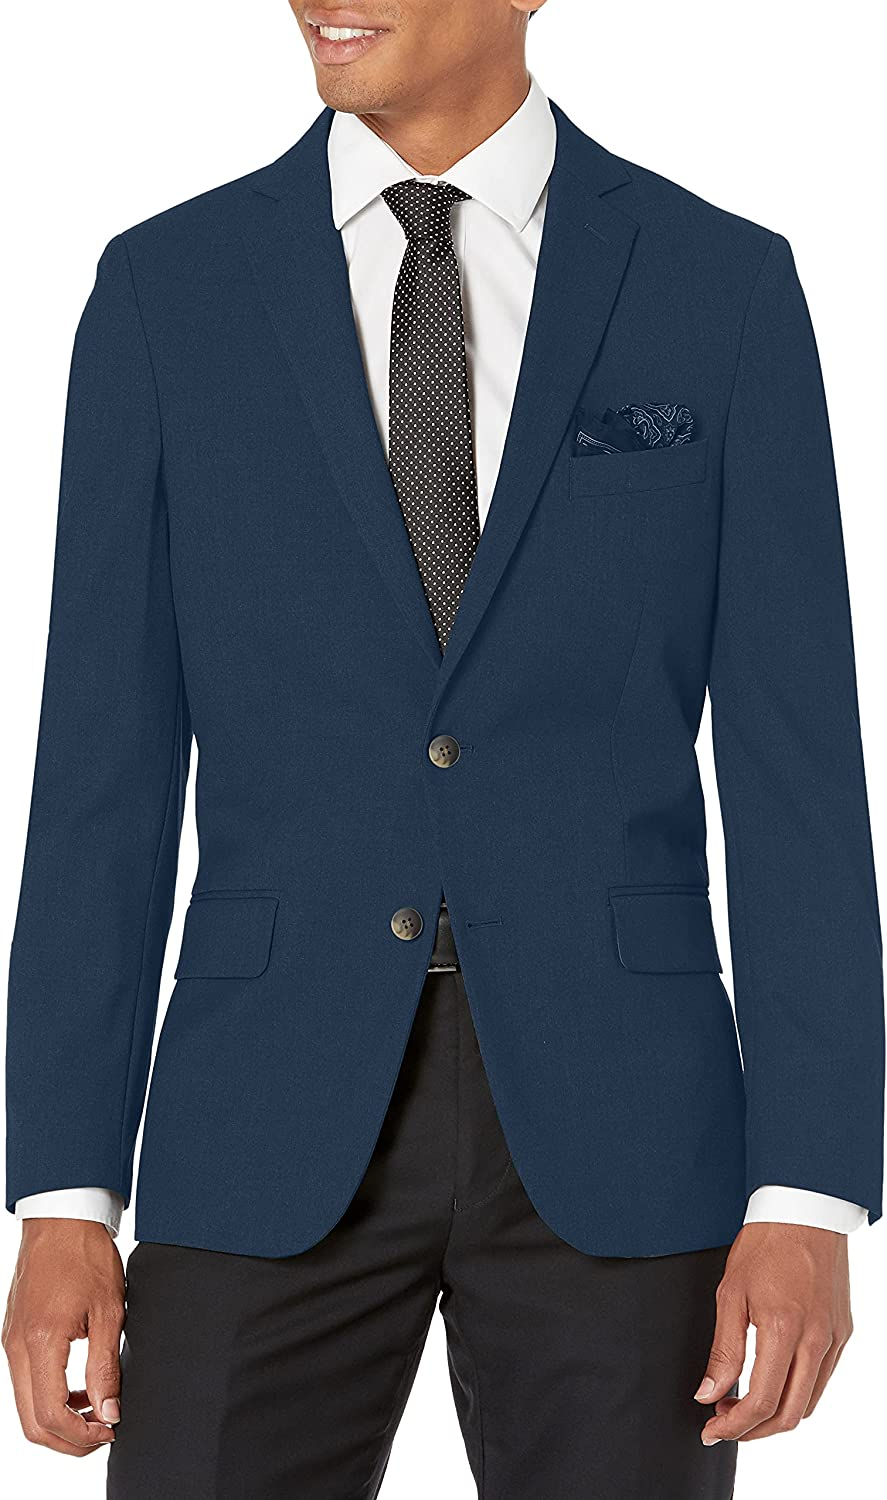 J.M. Haggar 4-Way Stretch Solid 2-Button Slim Fit Suit Separate Coat, Blue, 40XL